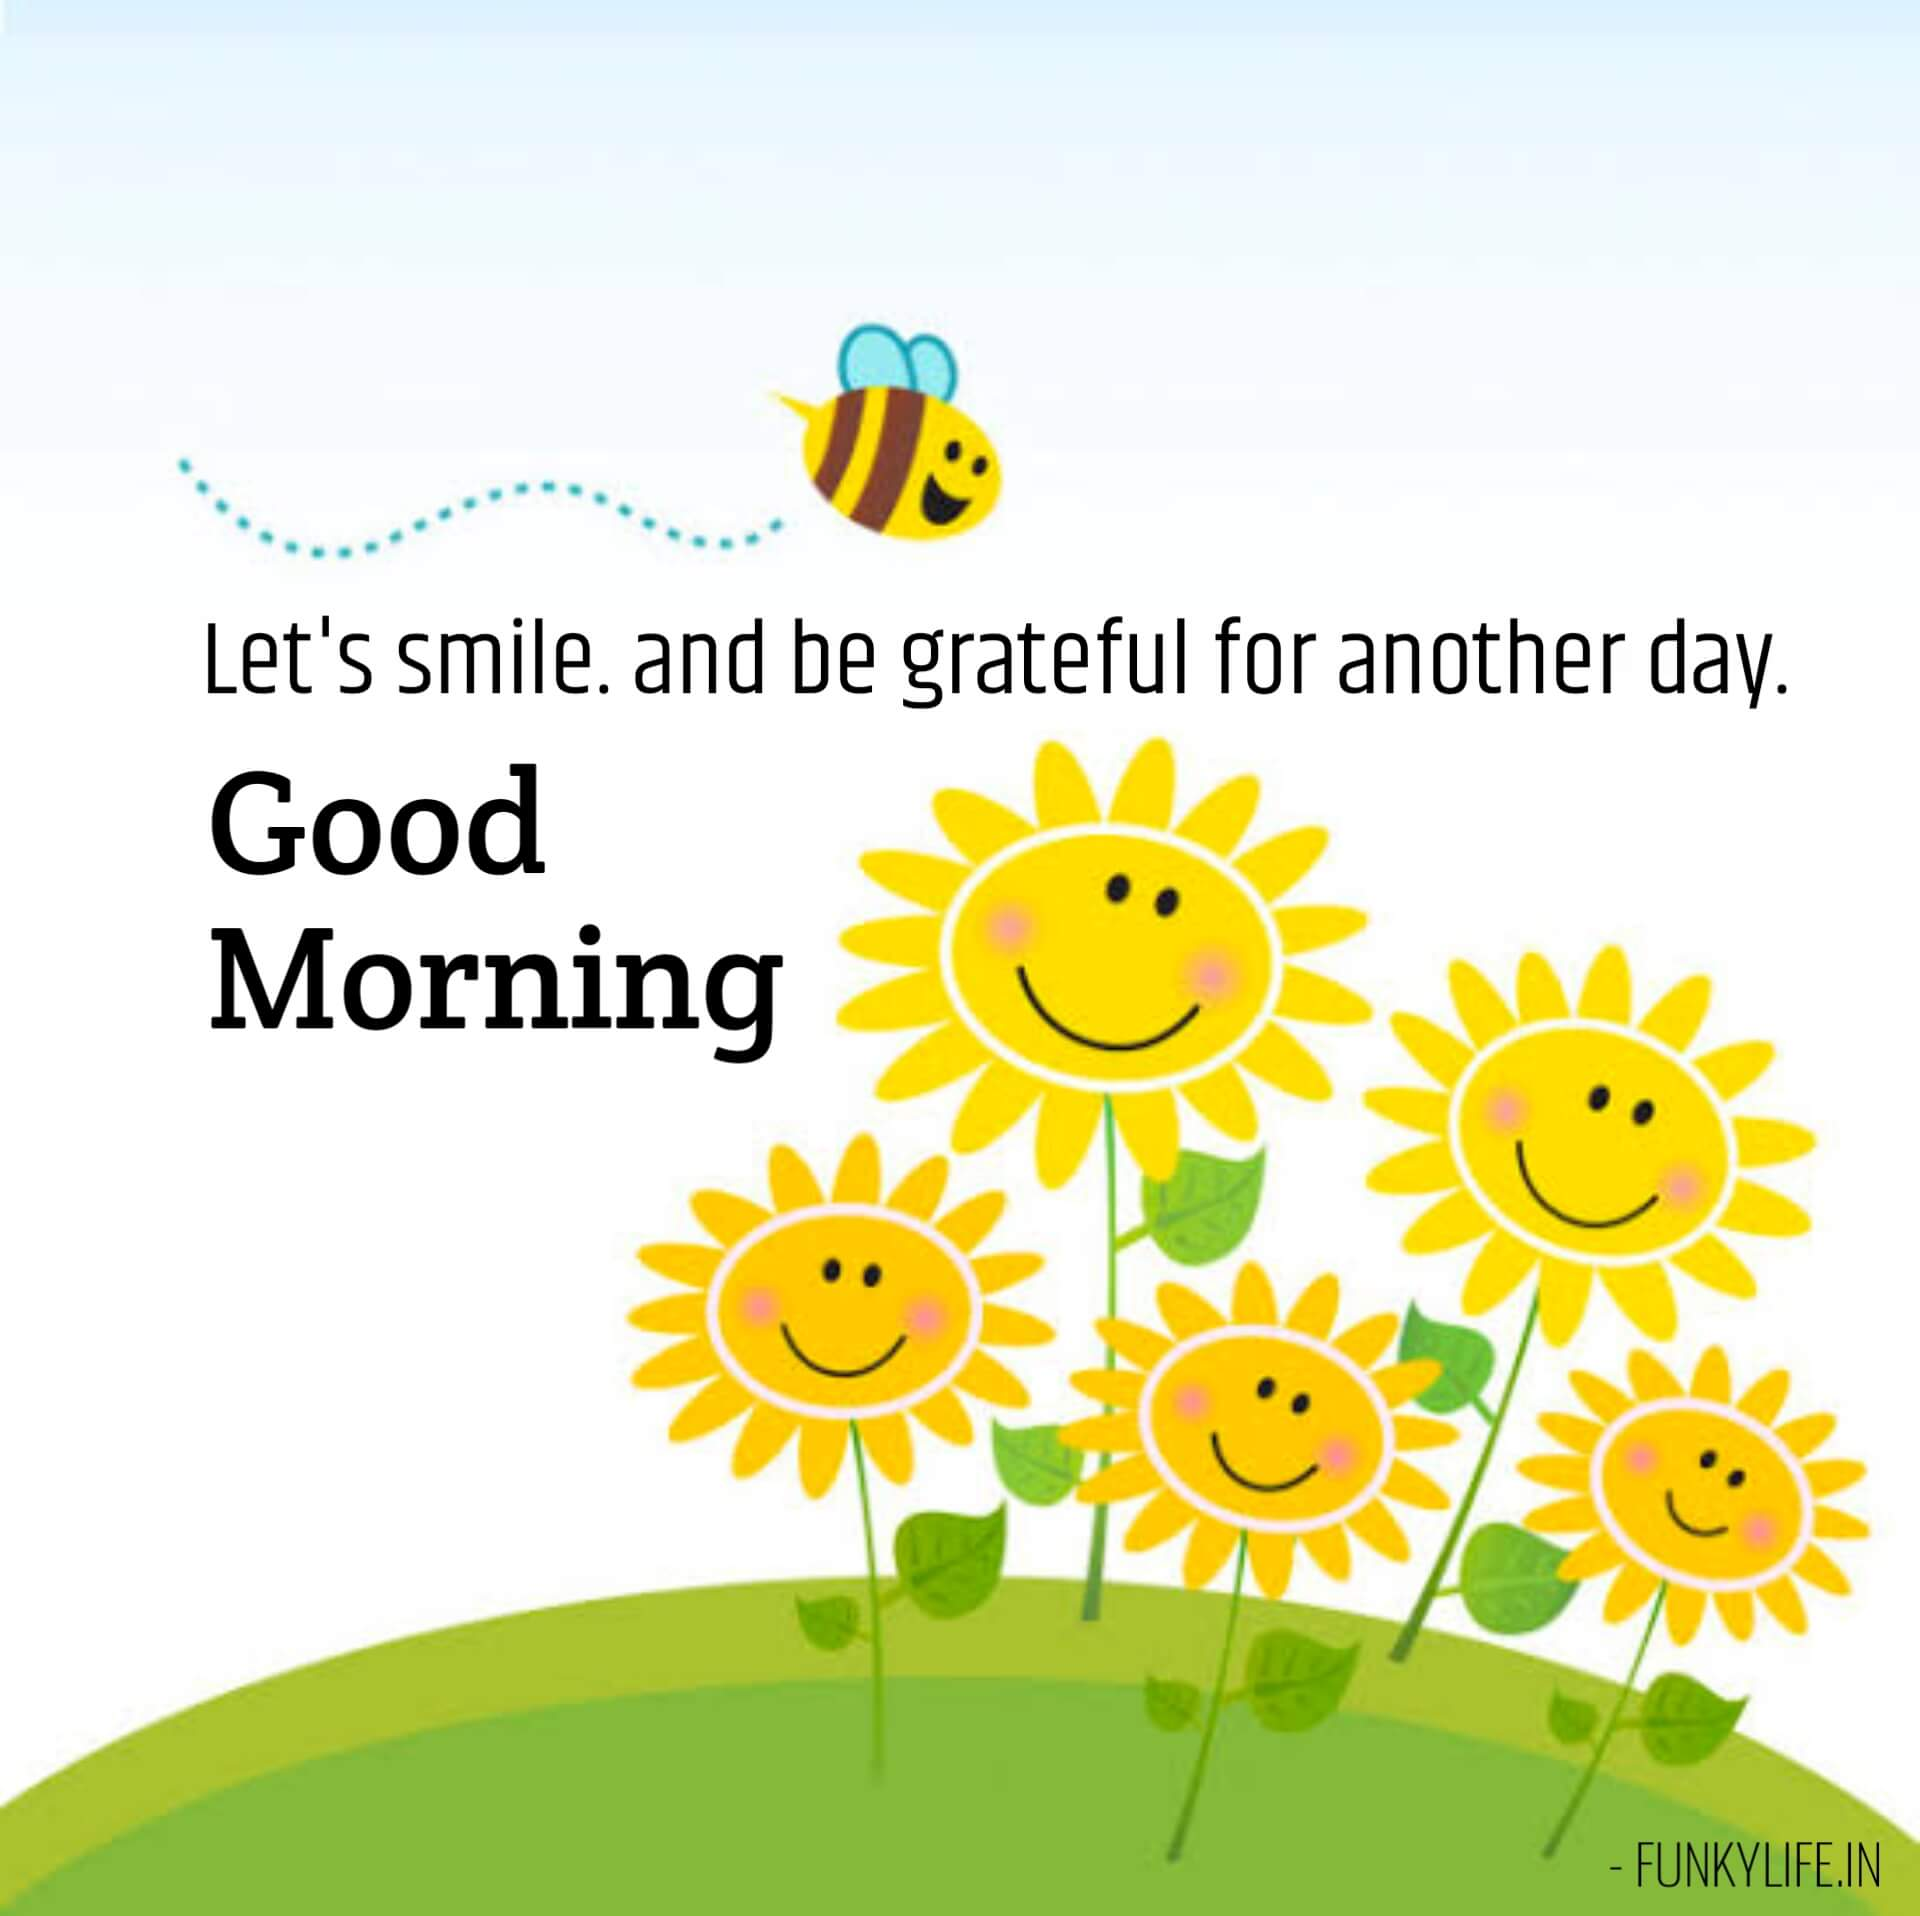 Good Morning Wishes With Images